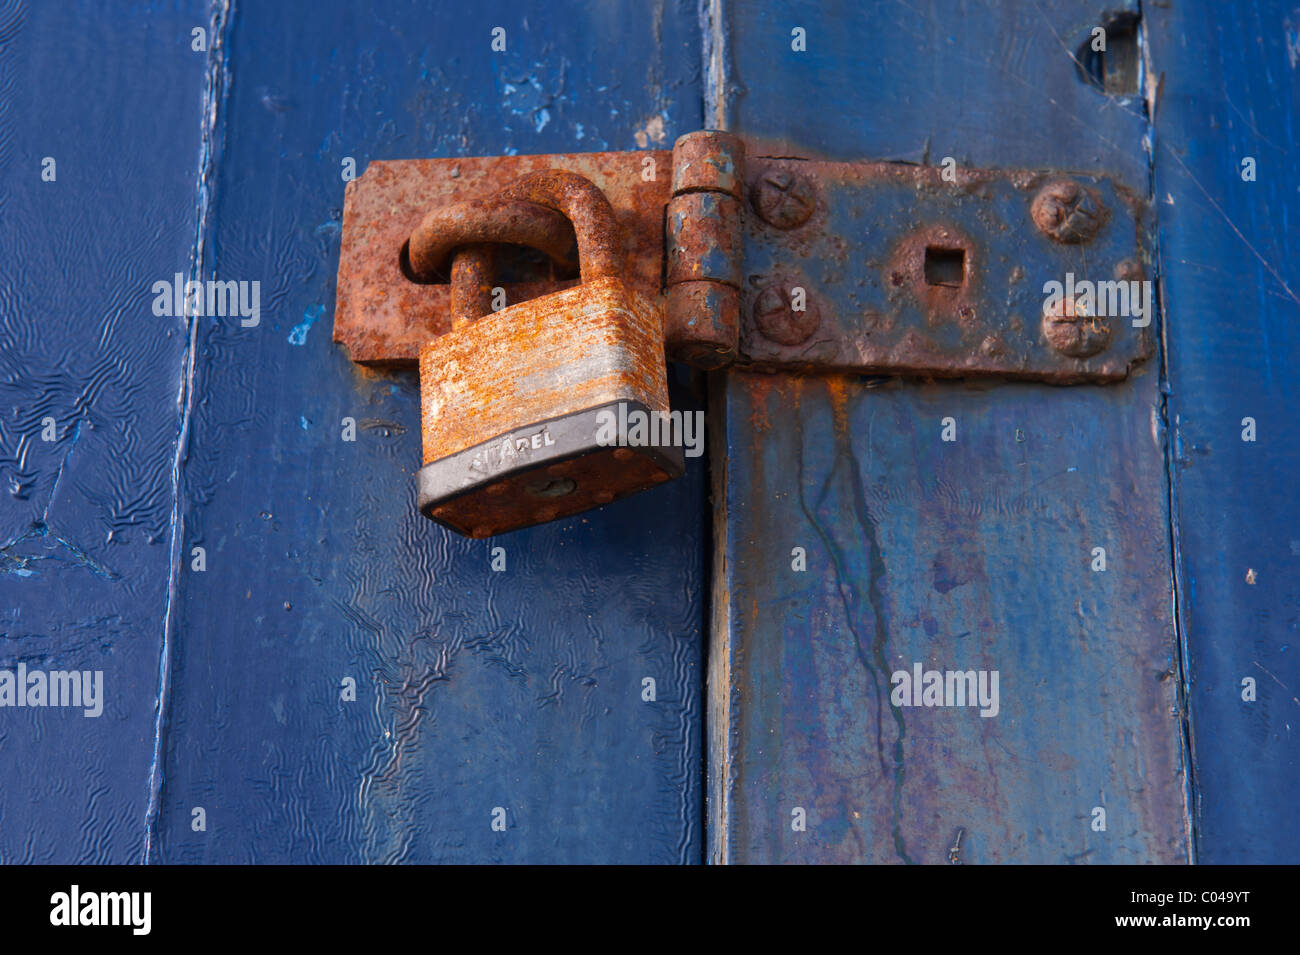 A close up of a rusty padlock - Stock Image